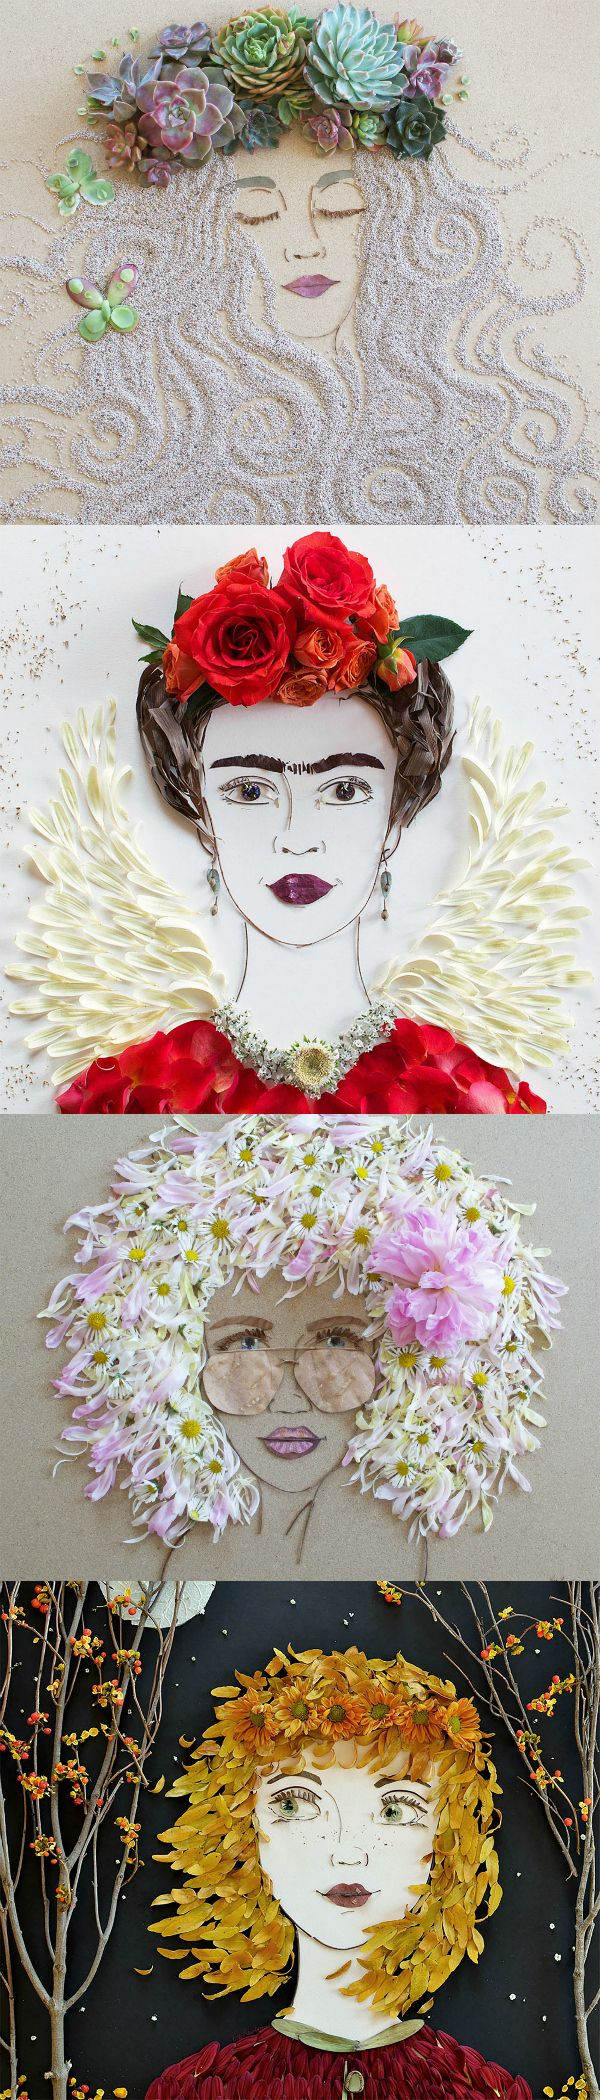 Chicago-based artist Vicki Rawlins constructs whimsical portraits of enigmatic women using flowers, greenery, sand and other organic objects. These unconventional works of art are captivating not only for their creativity but also for their ephemeral journey to creation and destruction.